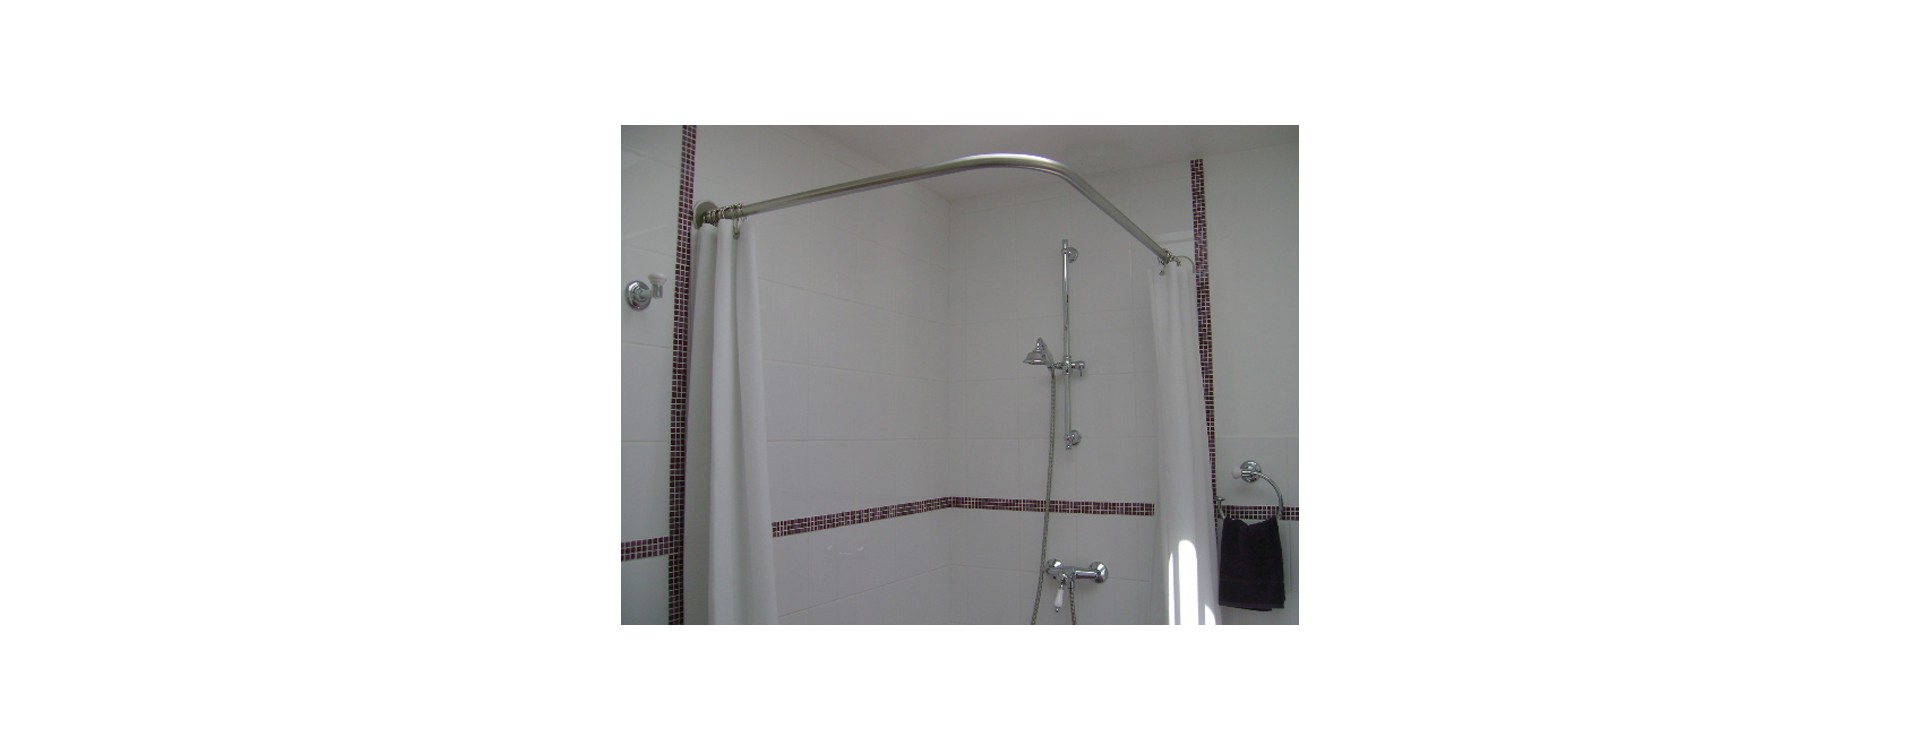 Tringle rideau de douche galbobain sur mesure pour douche italienne galbobain for Photos de douche italienne